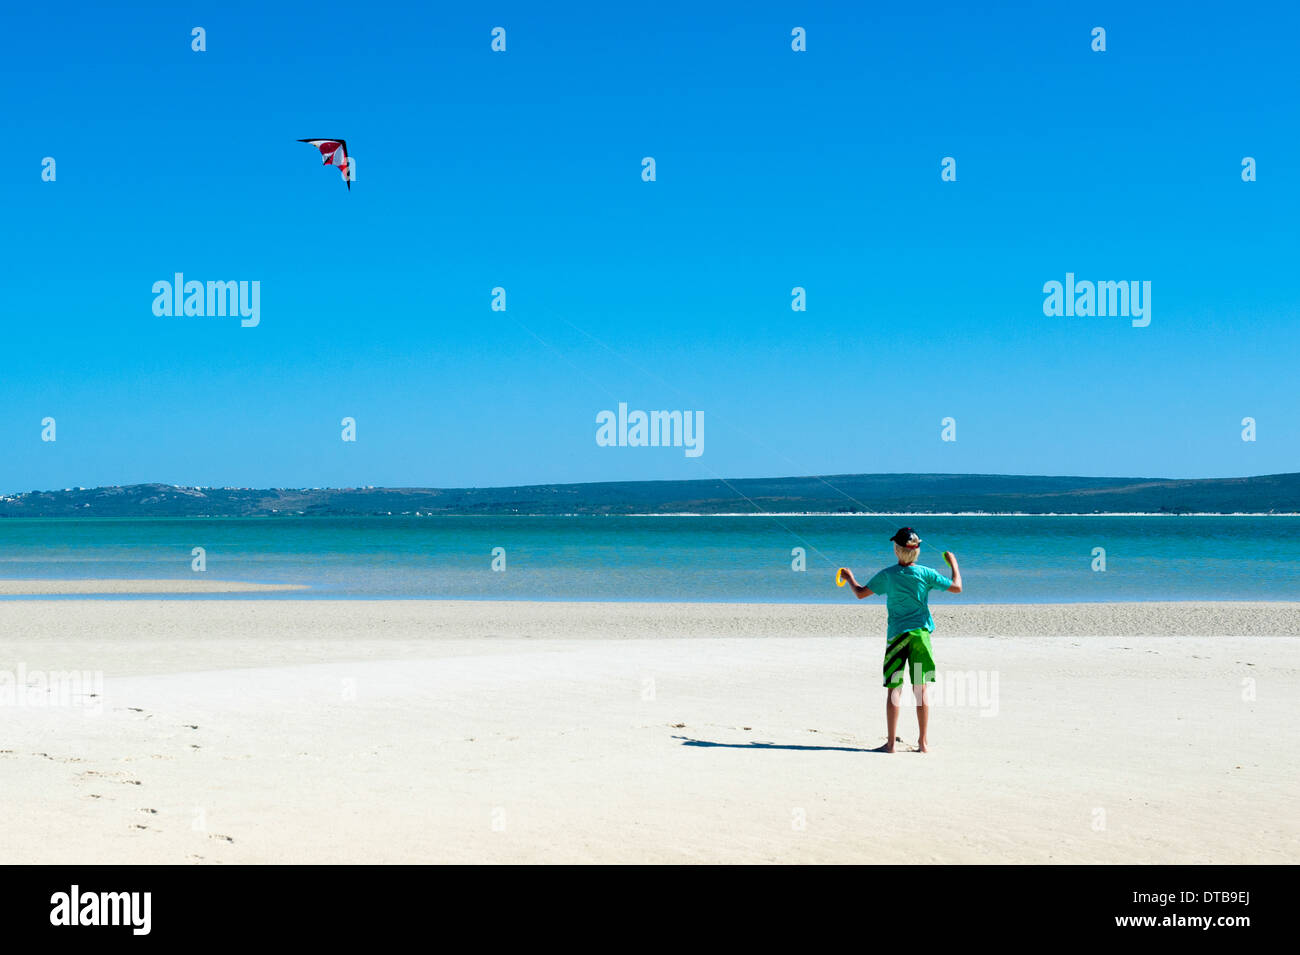 A boy flies his kite on the beach of a lagoon, Churchhaven, Western Cape, South Africa - Stock Image